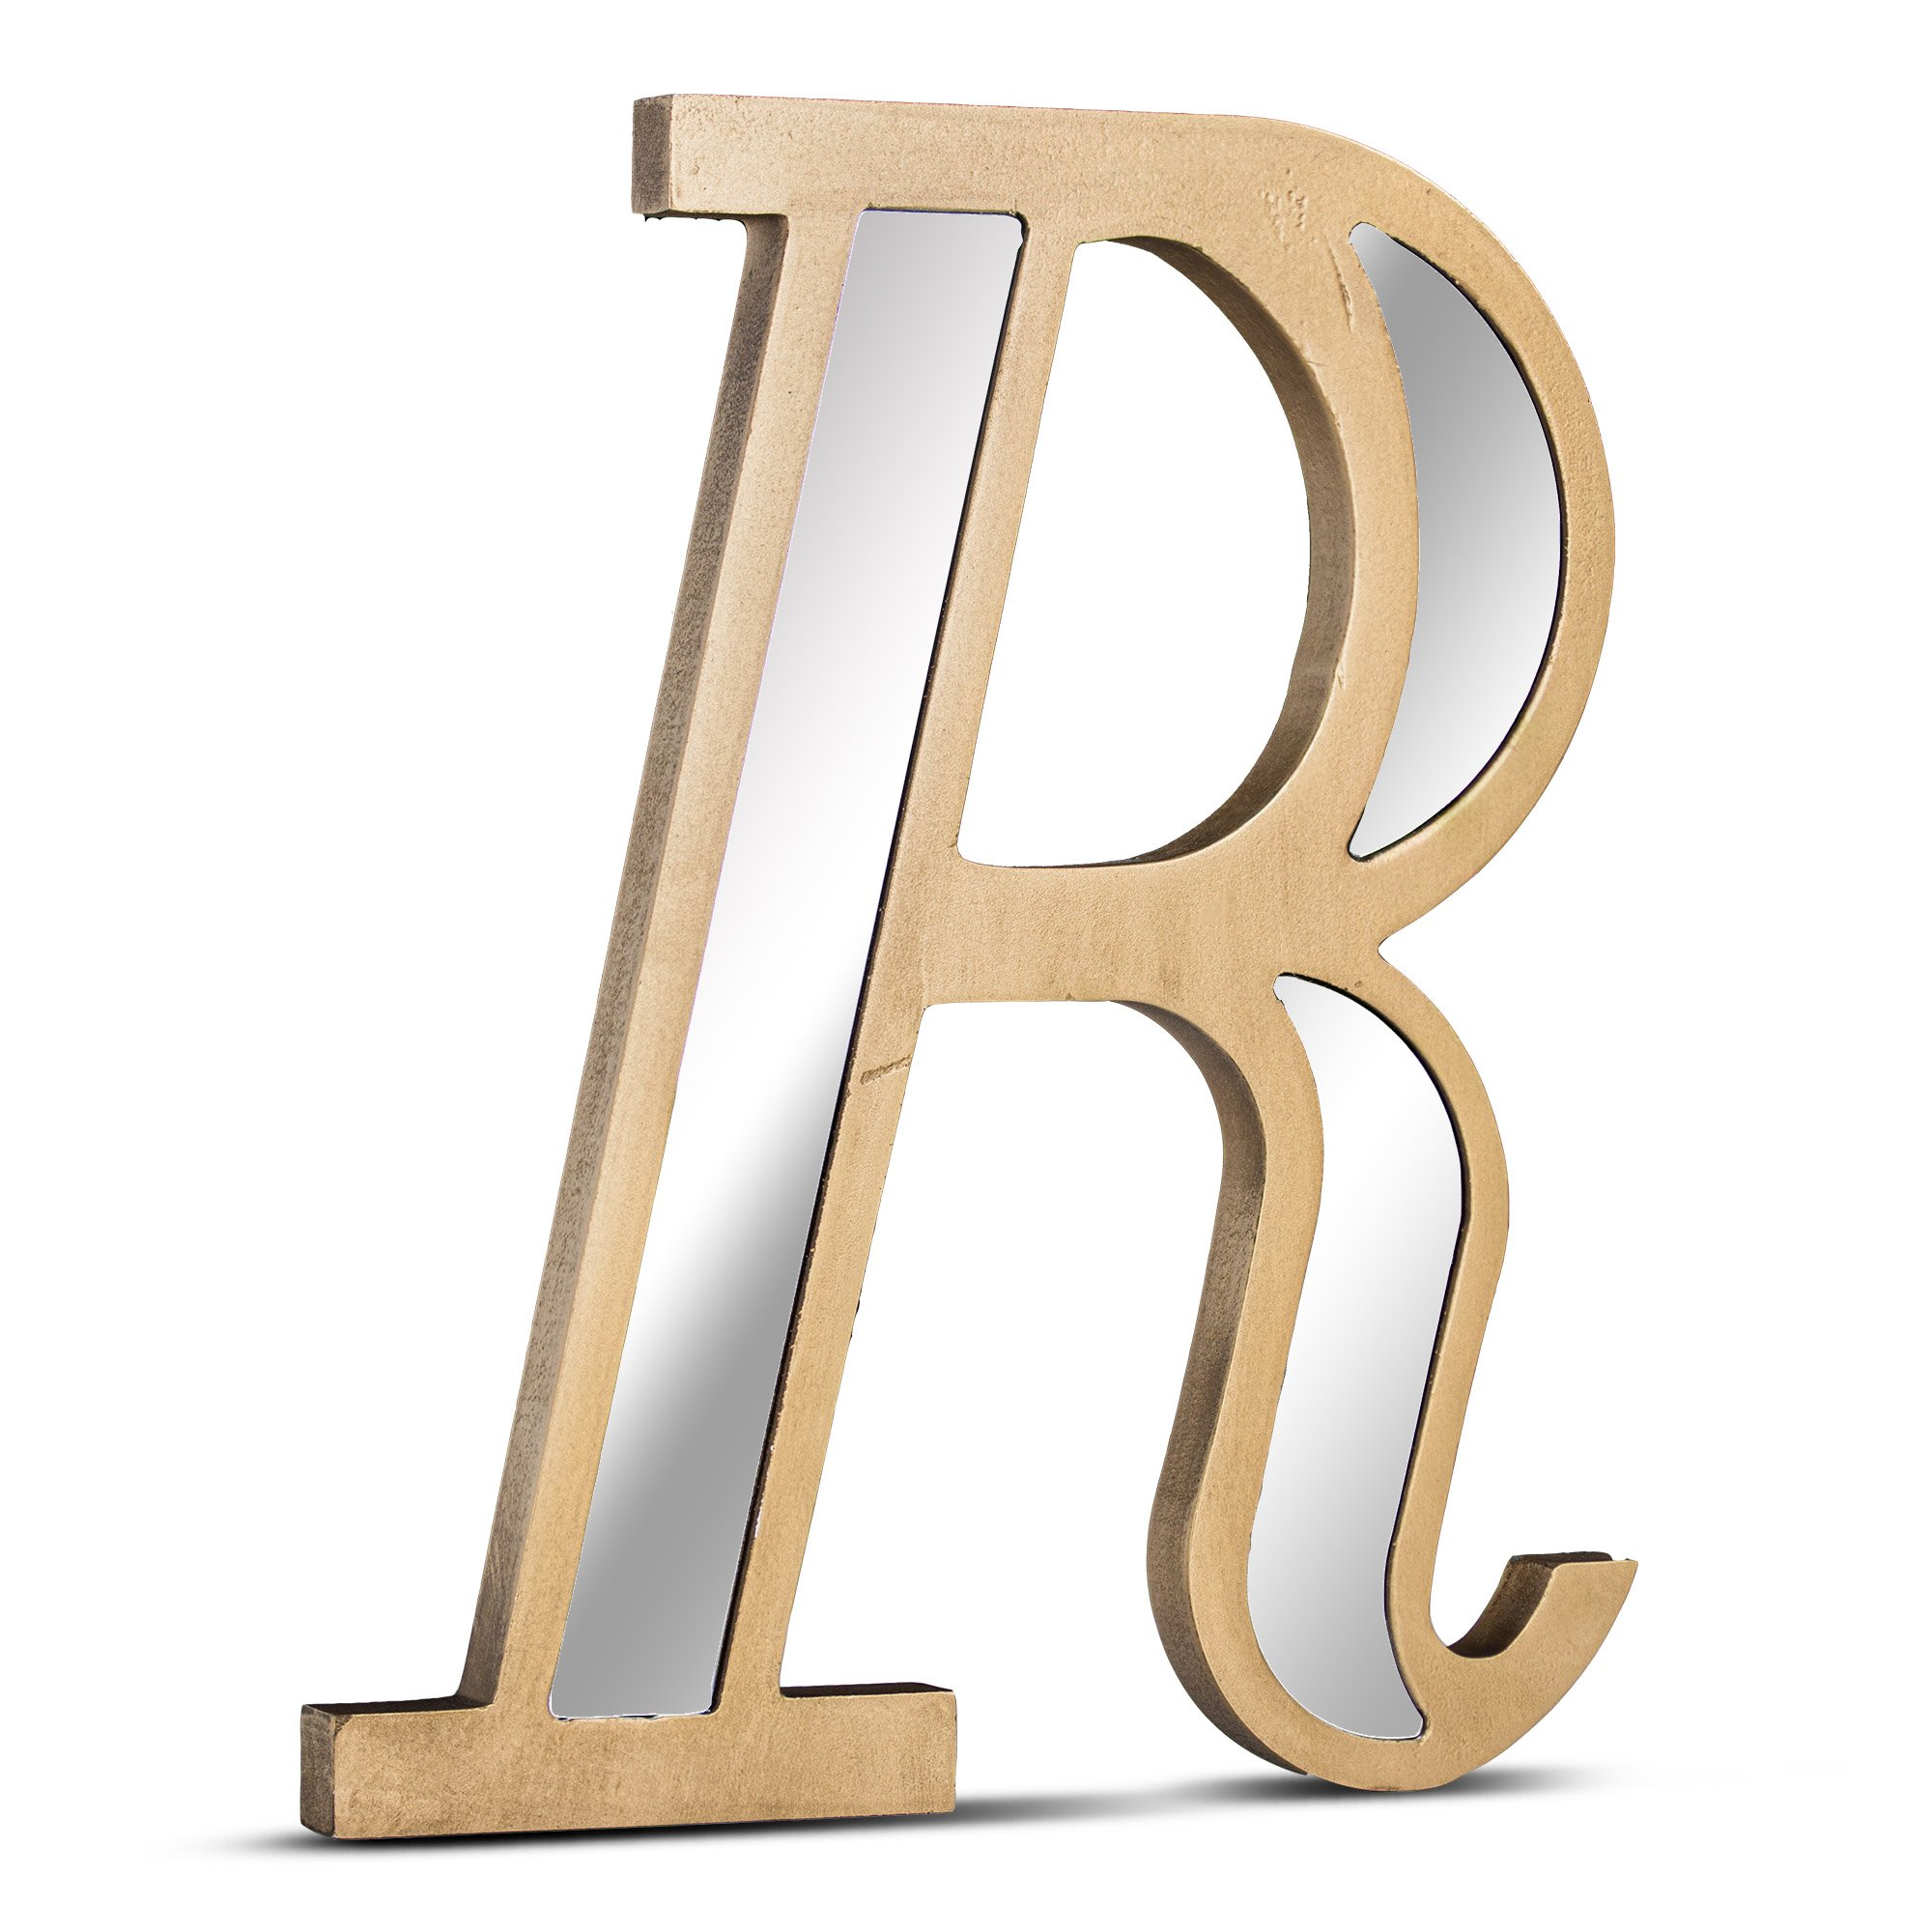 Millennium Art Letter R Acrylic Mirror Rustic Golden Hanging Wall Decorative Initial Cutout for Nursery Room, Baby's Name, Kid's Room, Living Room and Bedroom Home Decor